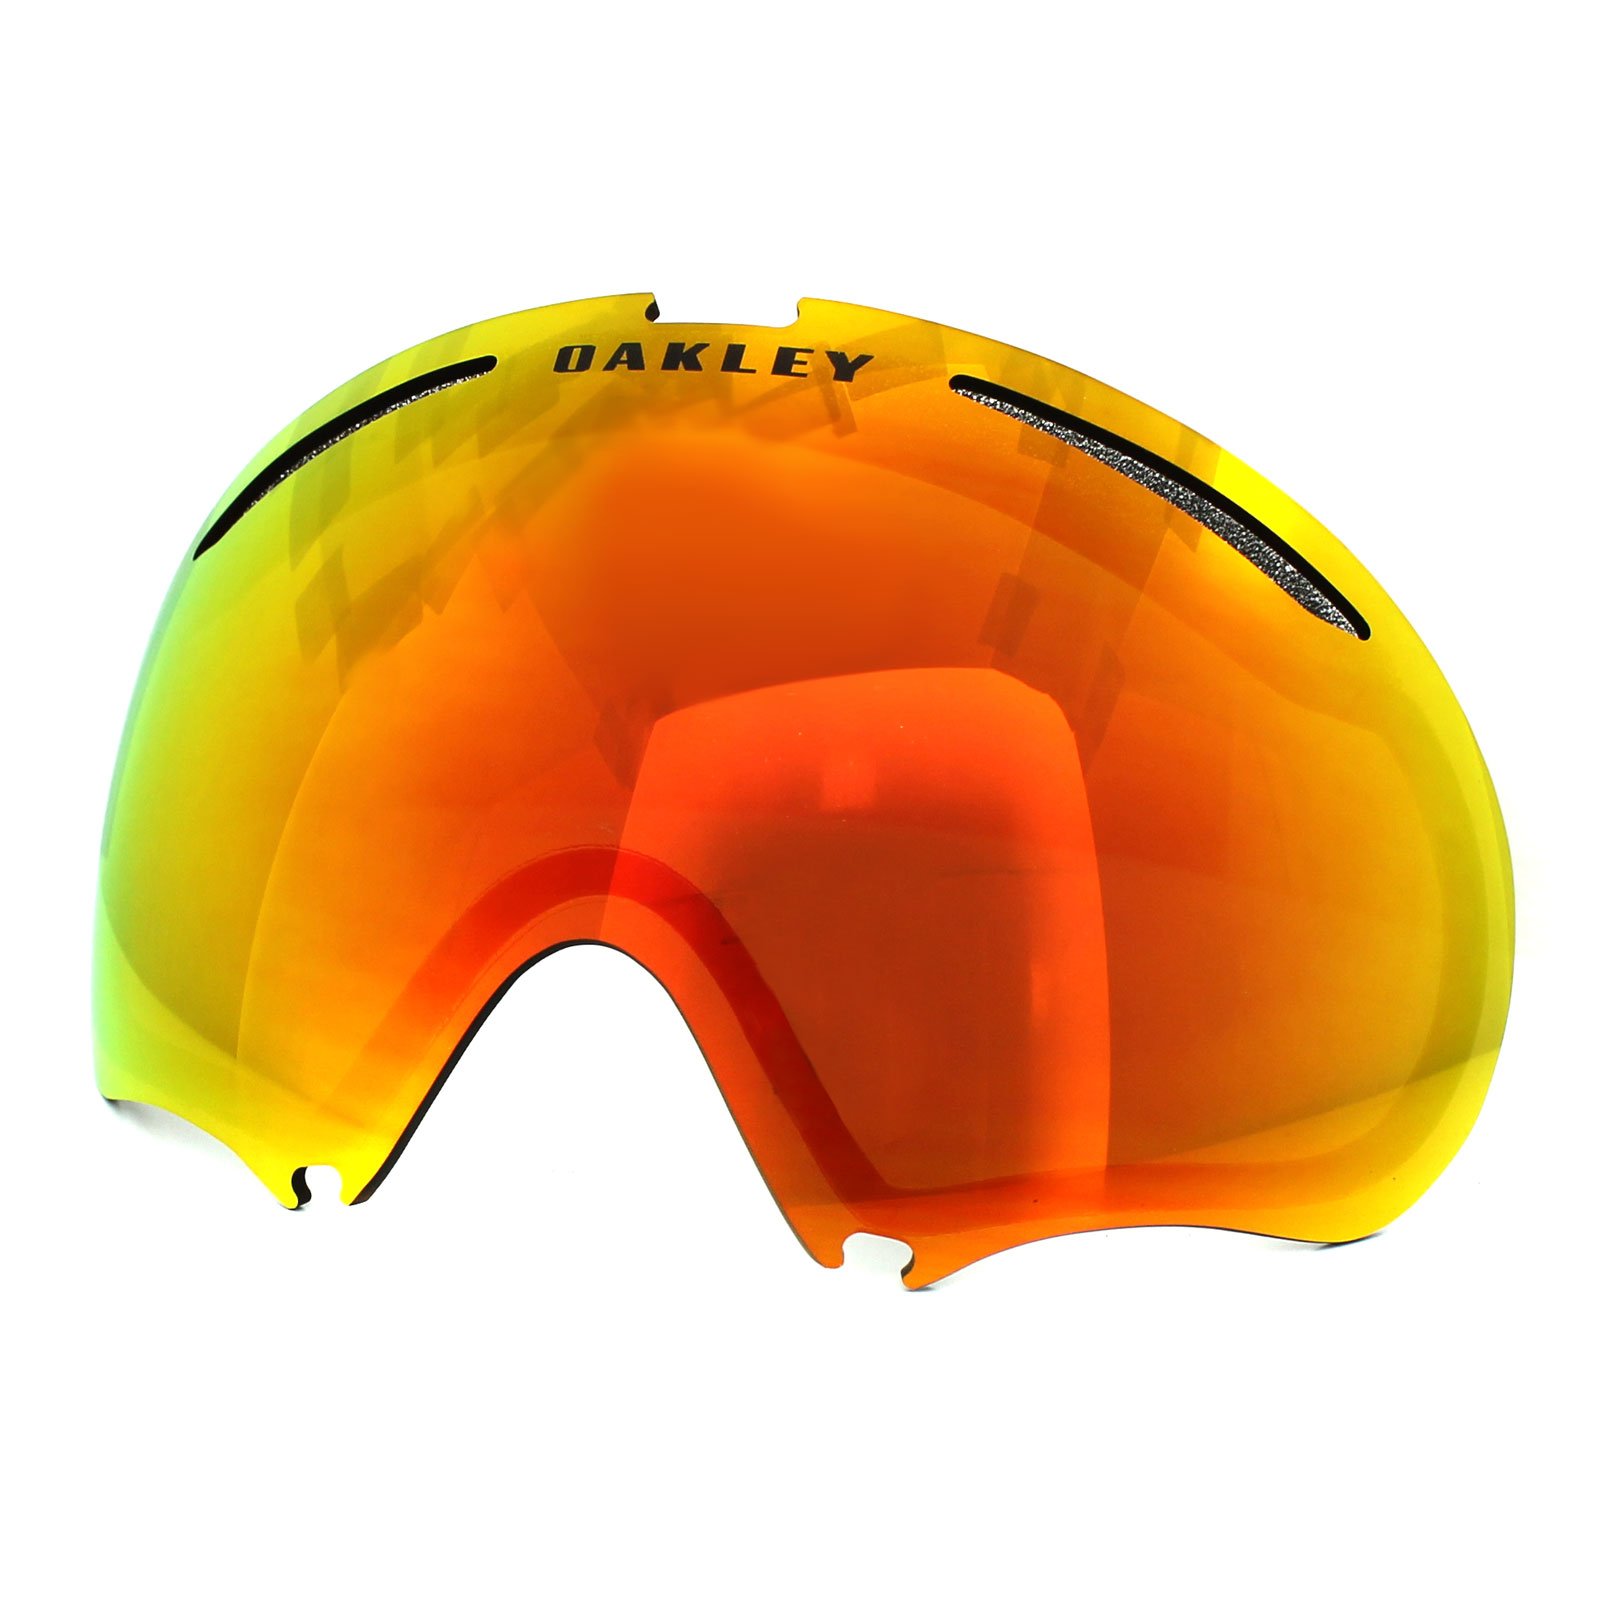 Cheap Oakley Ski Snow Goggles Replacement Lens A Frame 2.0 59-686 ...